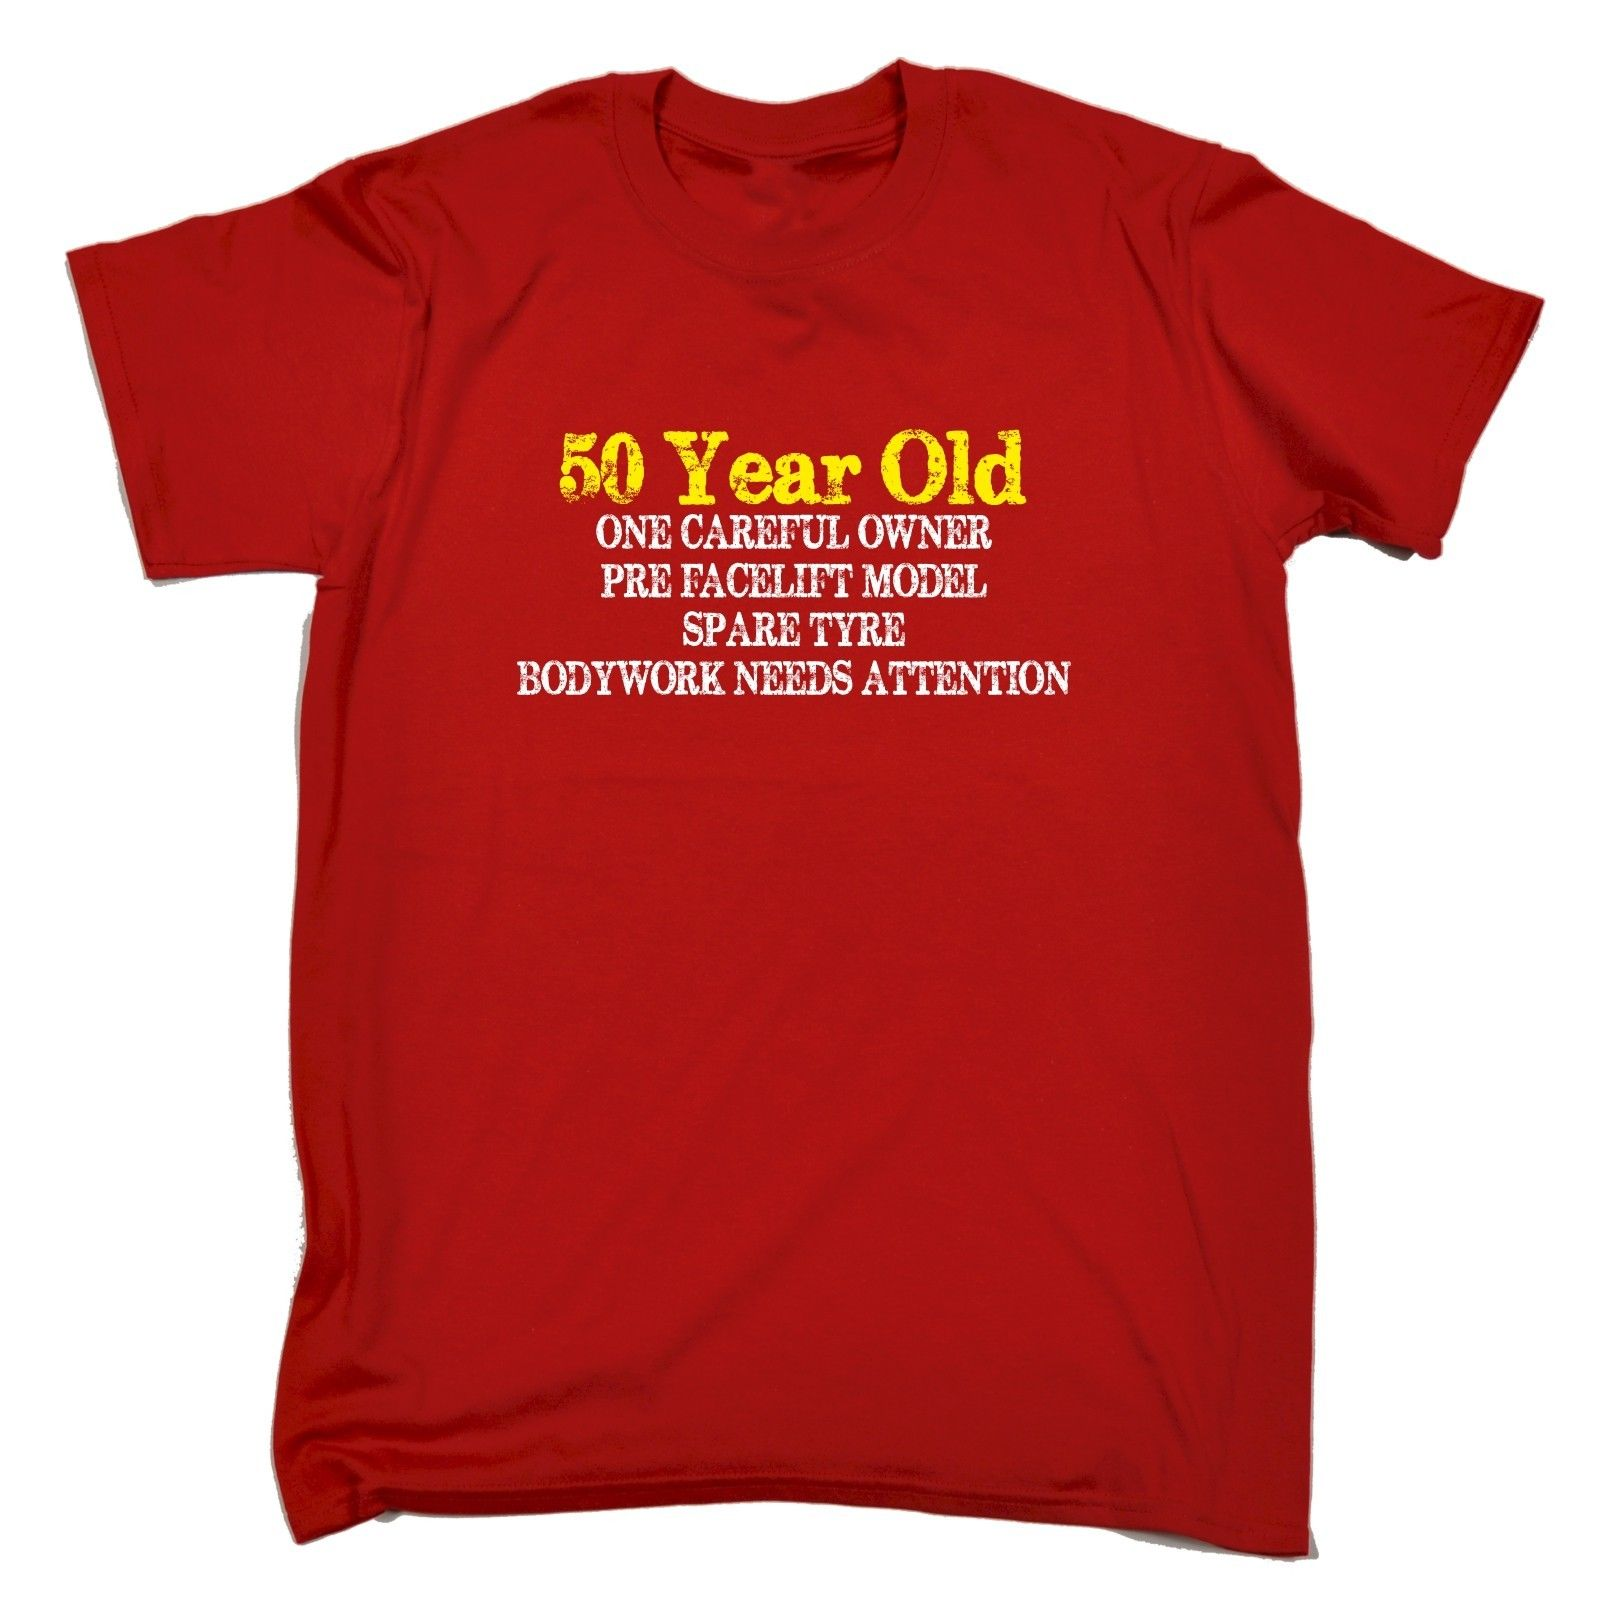 50 Year Old One Careful Owner T SHIRT Tee Birthday Joke Funny Gift Men 2018 Summer Round Neck MenS Shirt In Shirts From Mens Clothing On